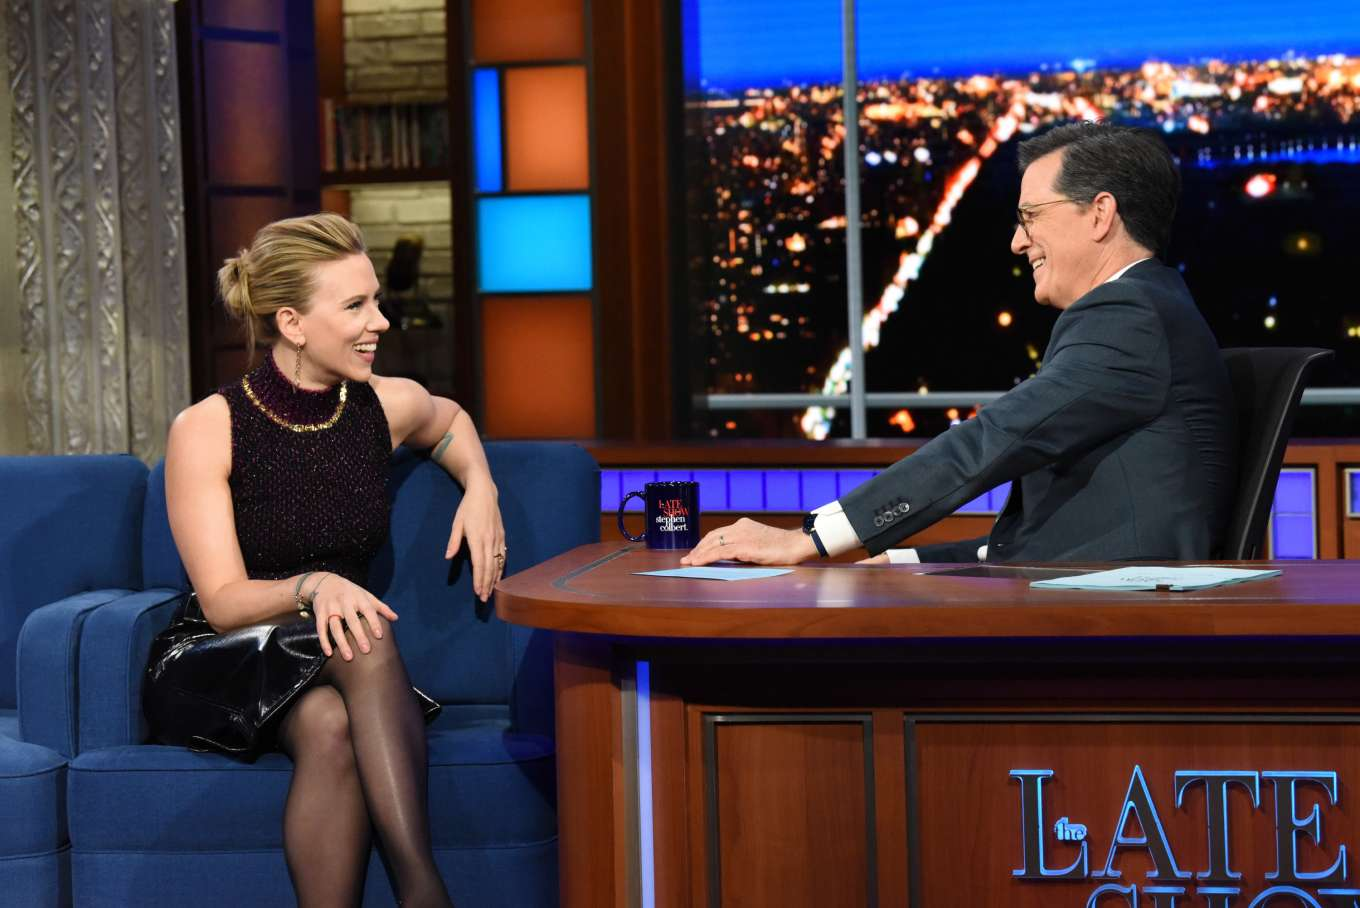 Scarlett Johansson - On The Late Show with Stephen Colbert in NYC